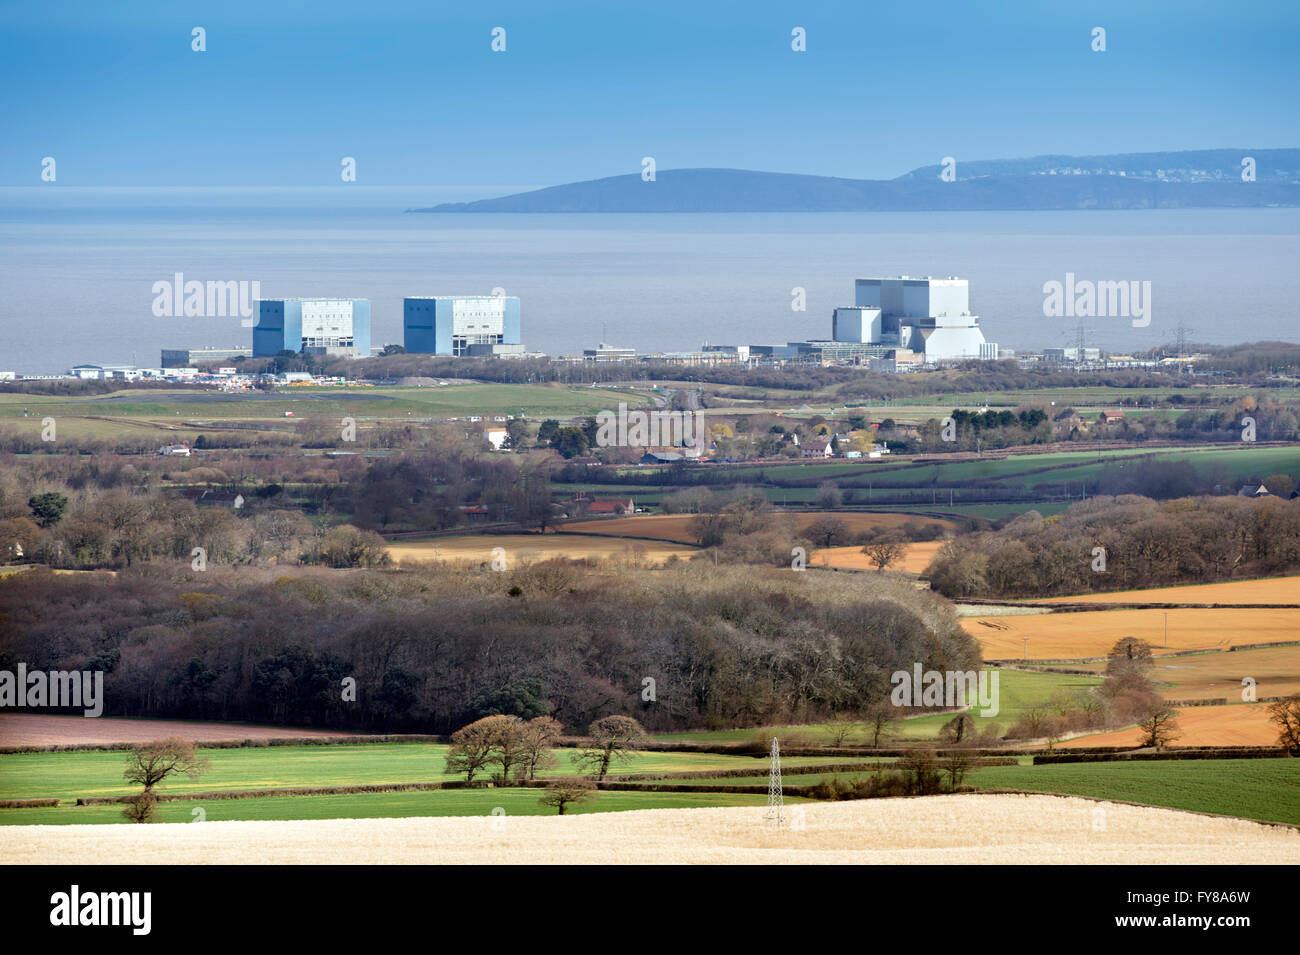 The site of EDF Energy's Hinkley Point C nuclear power station, with existing twin reactors of Hinkley A (left), - Stock Image